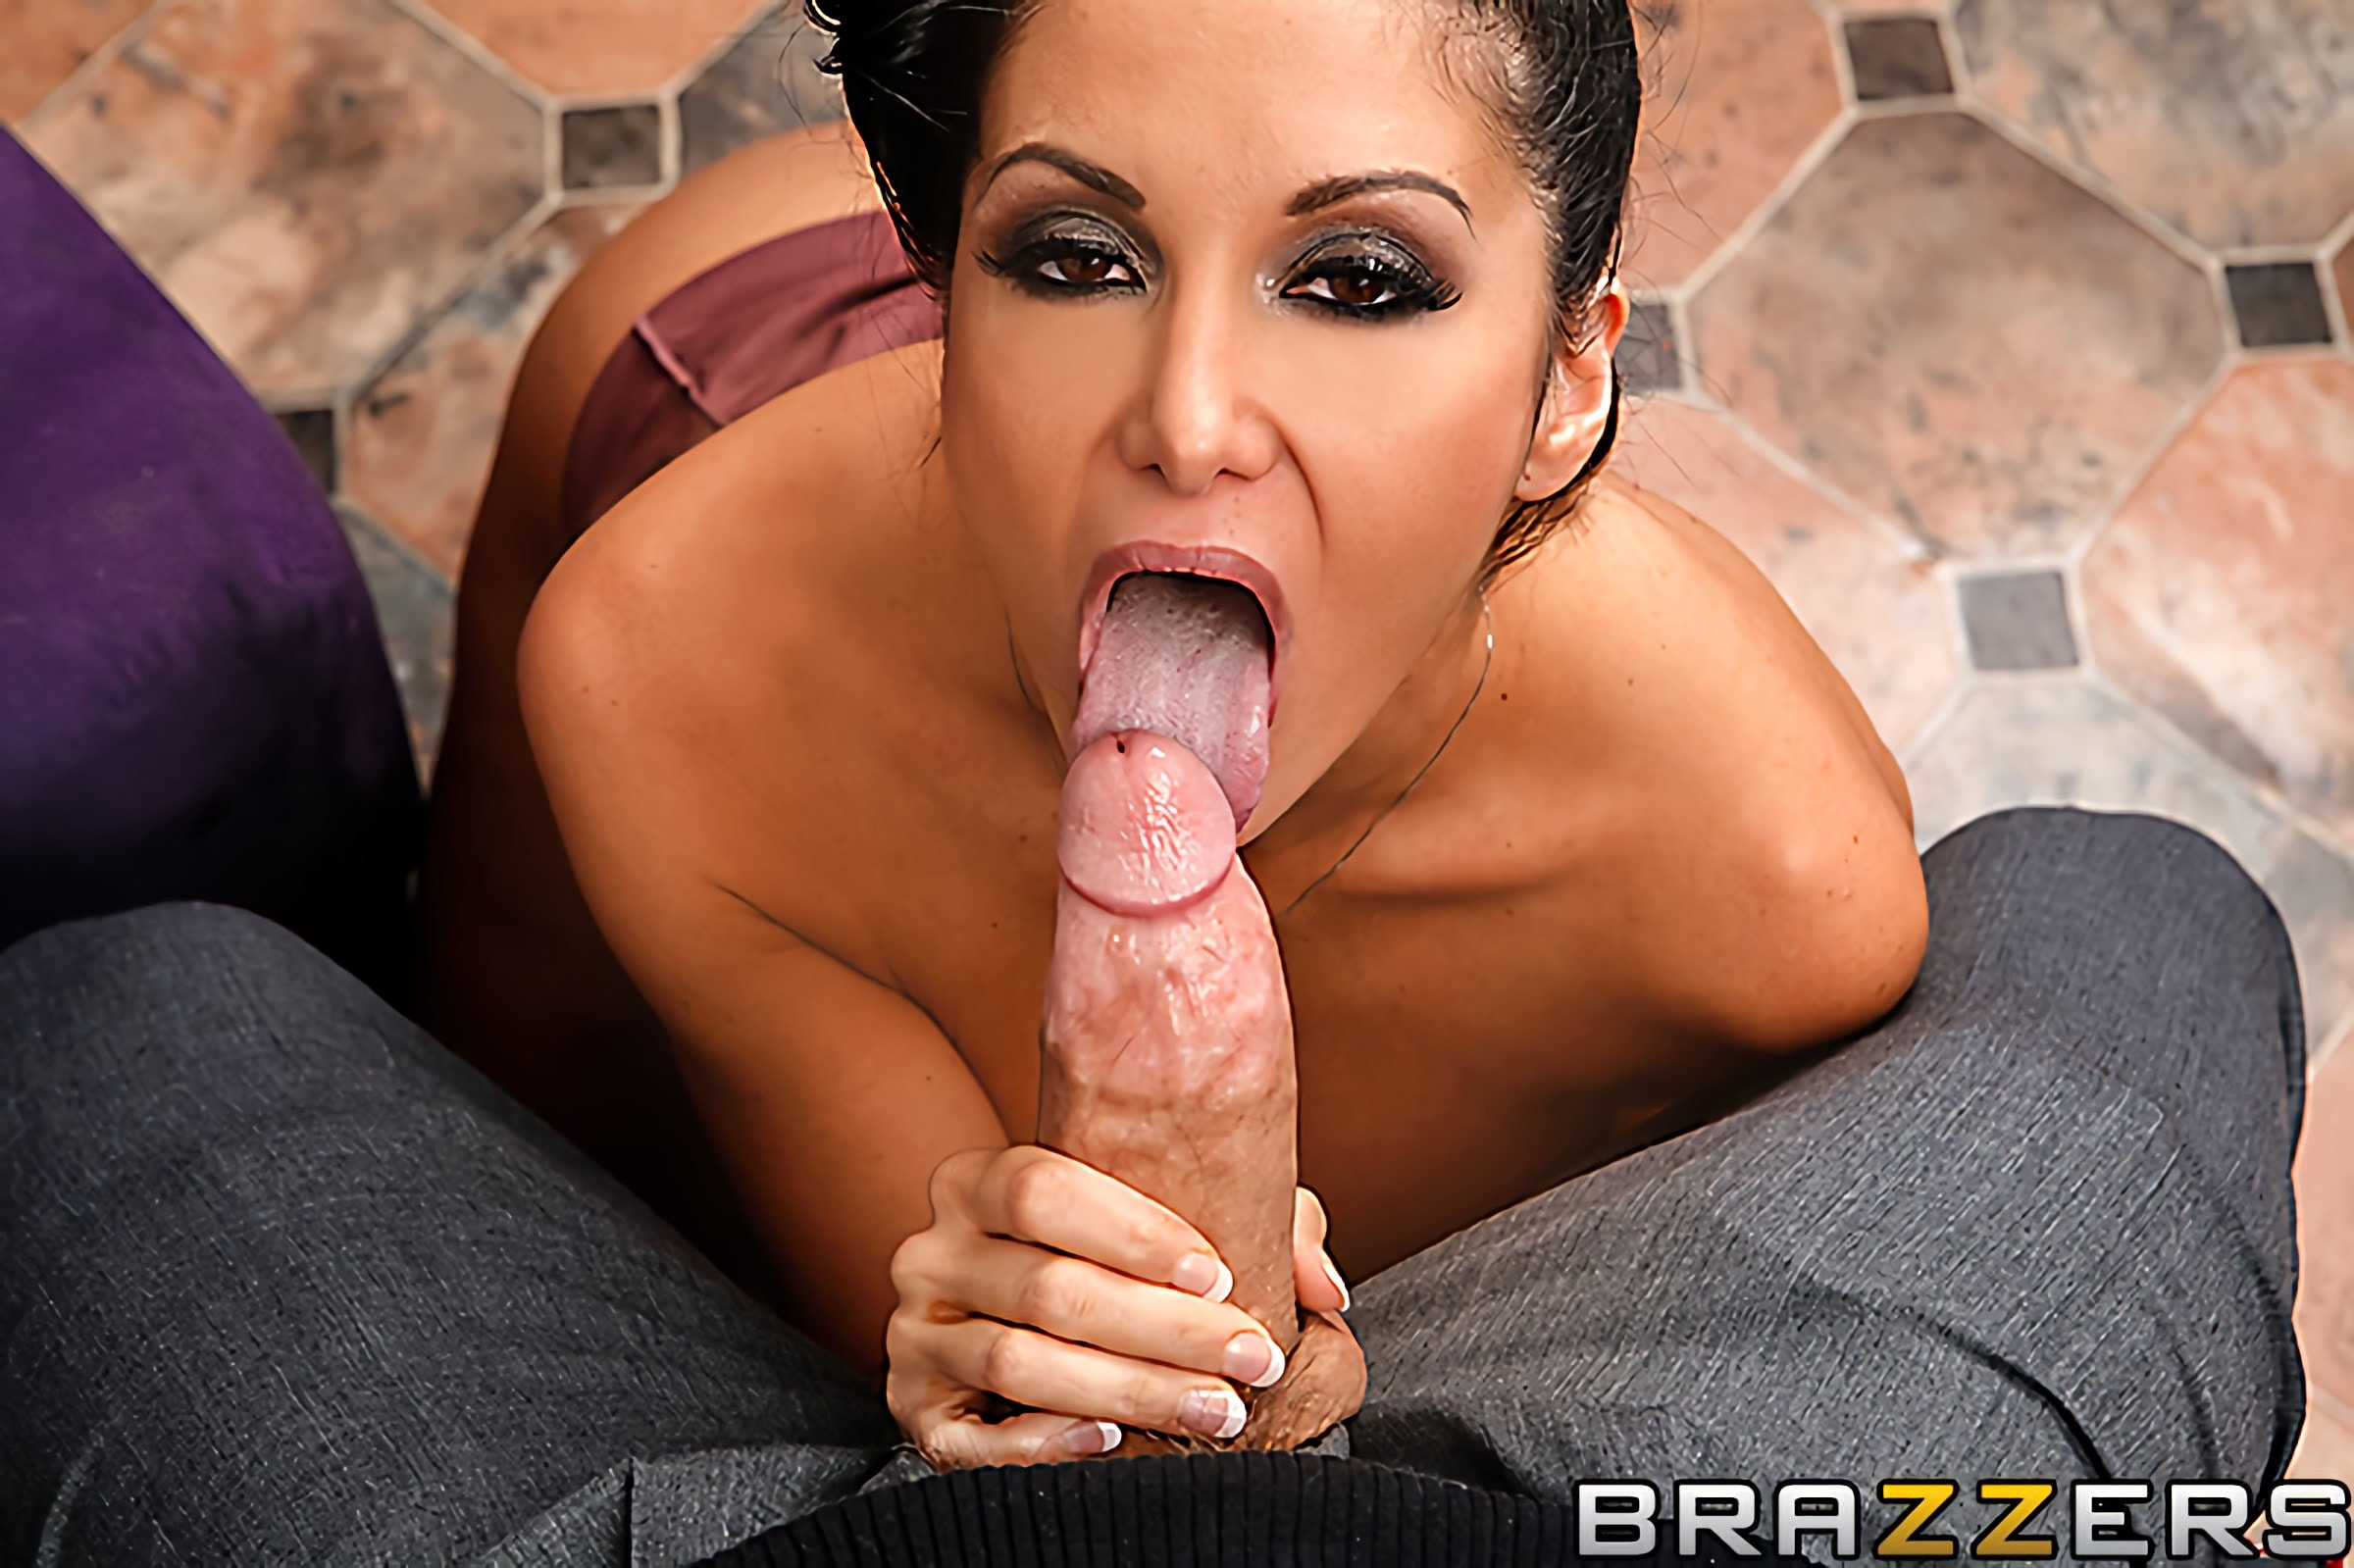 Brazzers 'Ava Addams School of Modeling' starring Ava Addams (photo 7)